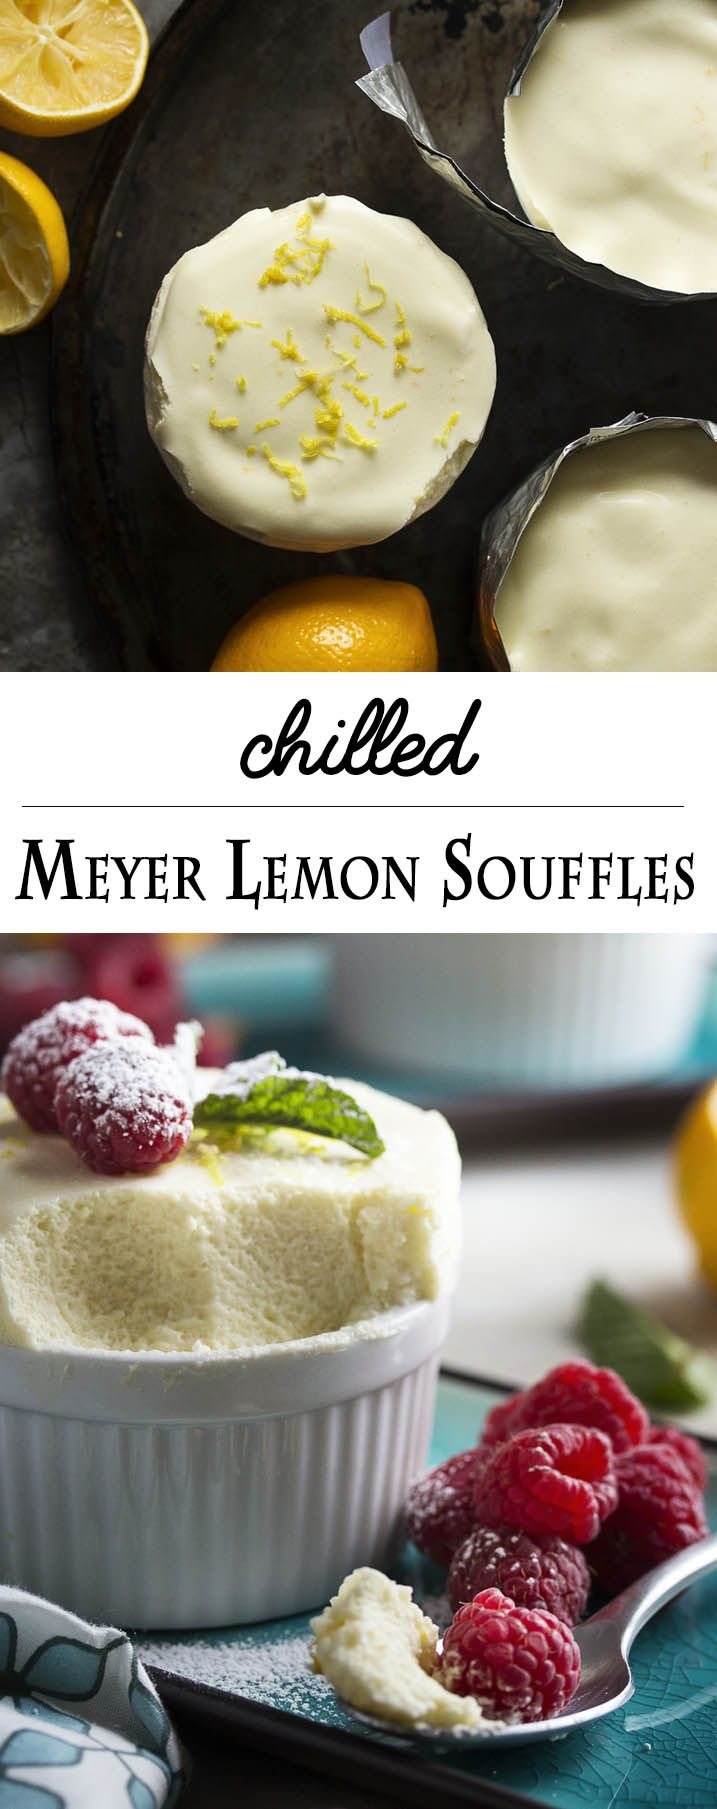 Meyer lemons give these chilled lemon souffles a sweeter, rather floral flavor which is just right for this elegant, make-ahead dessert. Serve them in small ramekins so the souffle climbs over the rims or in parfait glasses with whipped cream.   justalittlebitofbacon.com